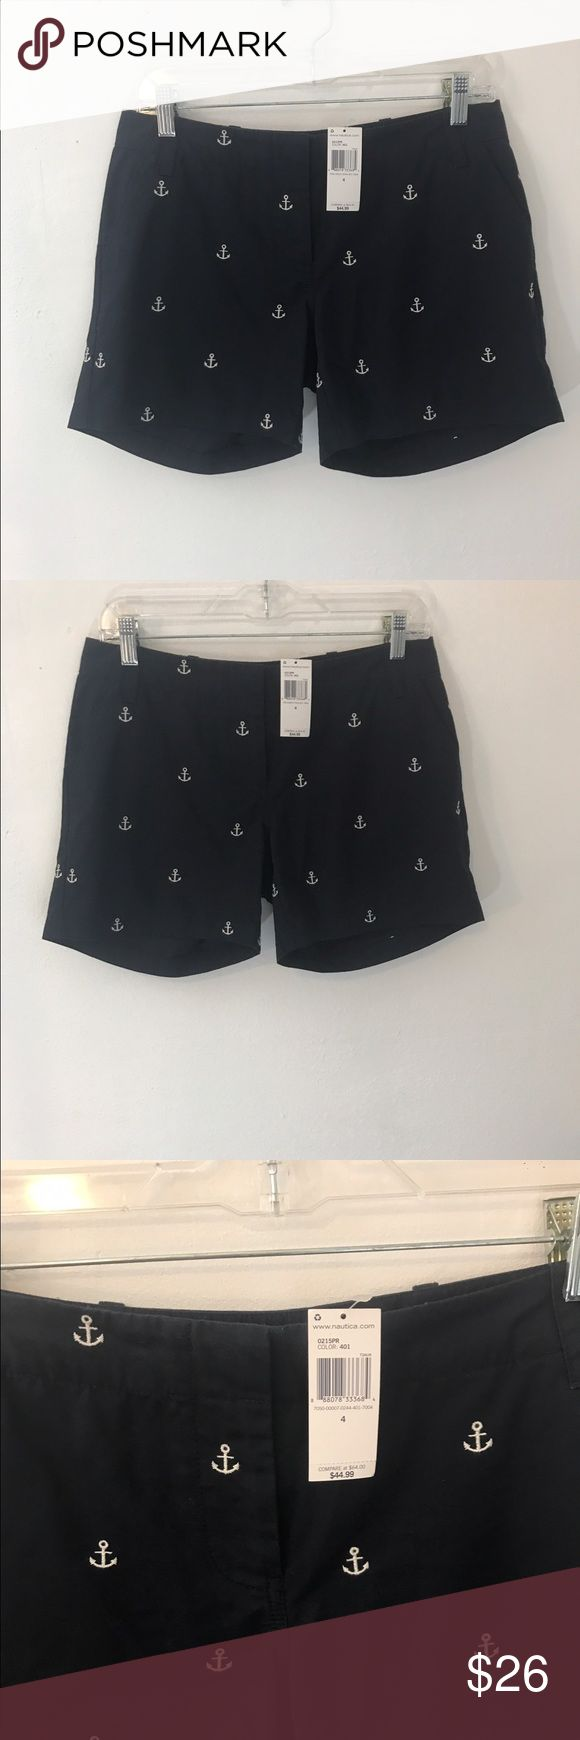 Nautica Nautical Shorts Size 4 Anchor navy Blue Womens Nautica Nautical Shorts Size 4 Anchor navy Blue White Yacht Boating NWT  Brand new with tags. J. Crew Shorts